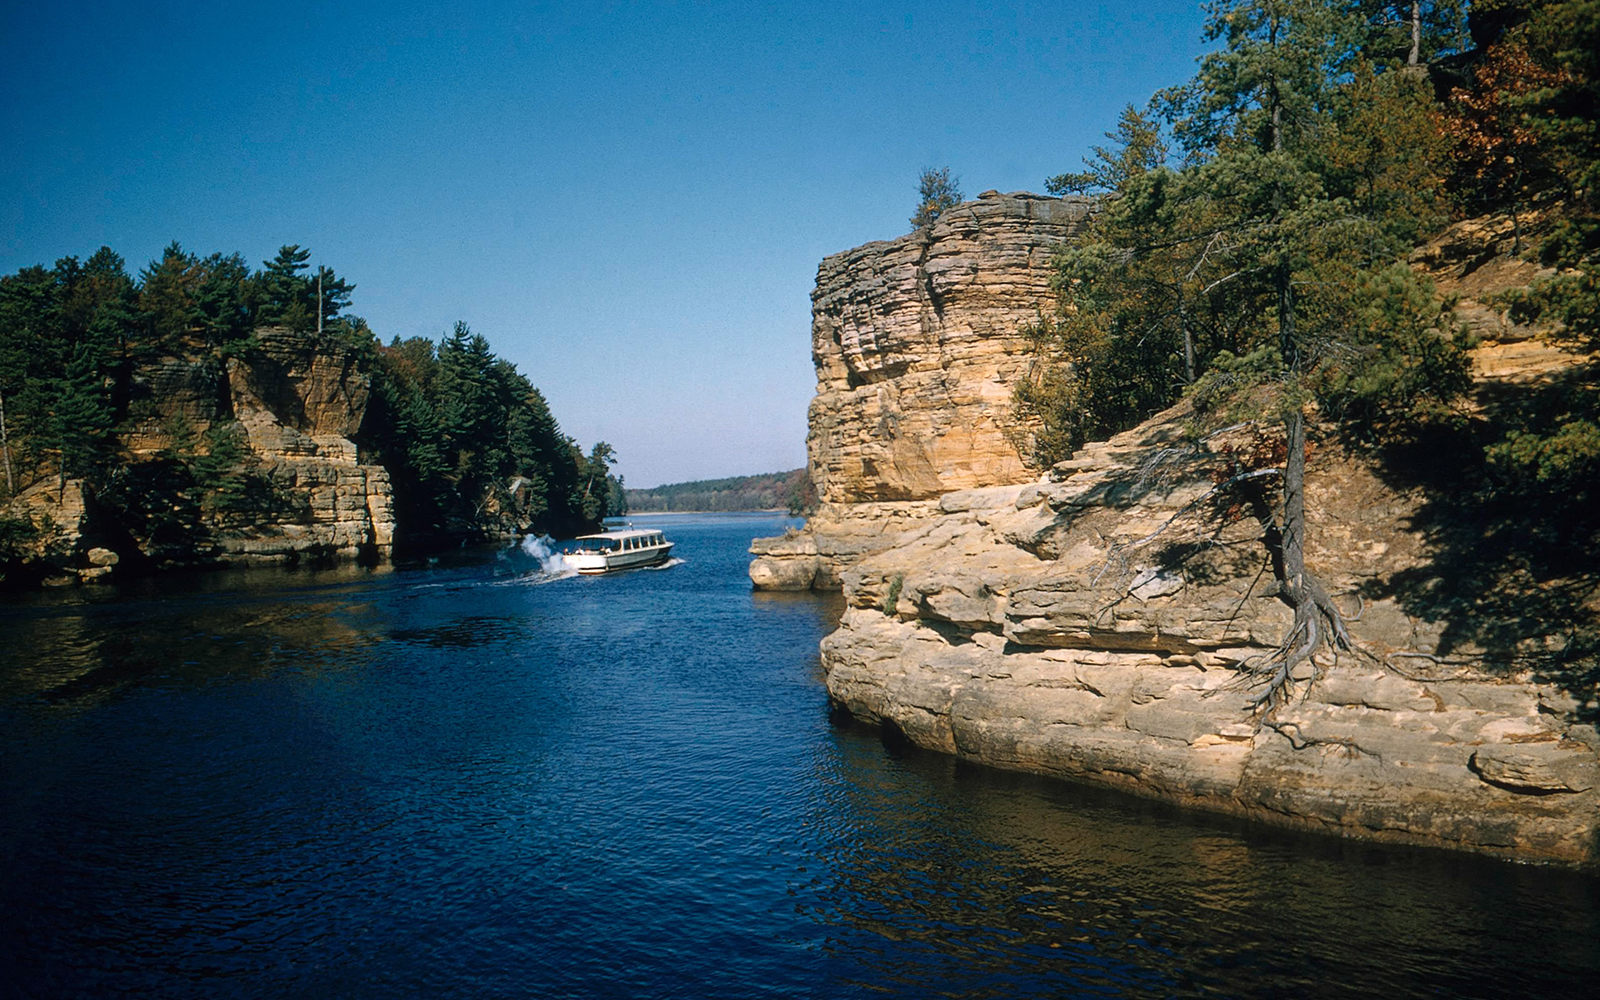 View of the dells, an area on the Wisconsin river noted for its unique sandstone rock formations.